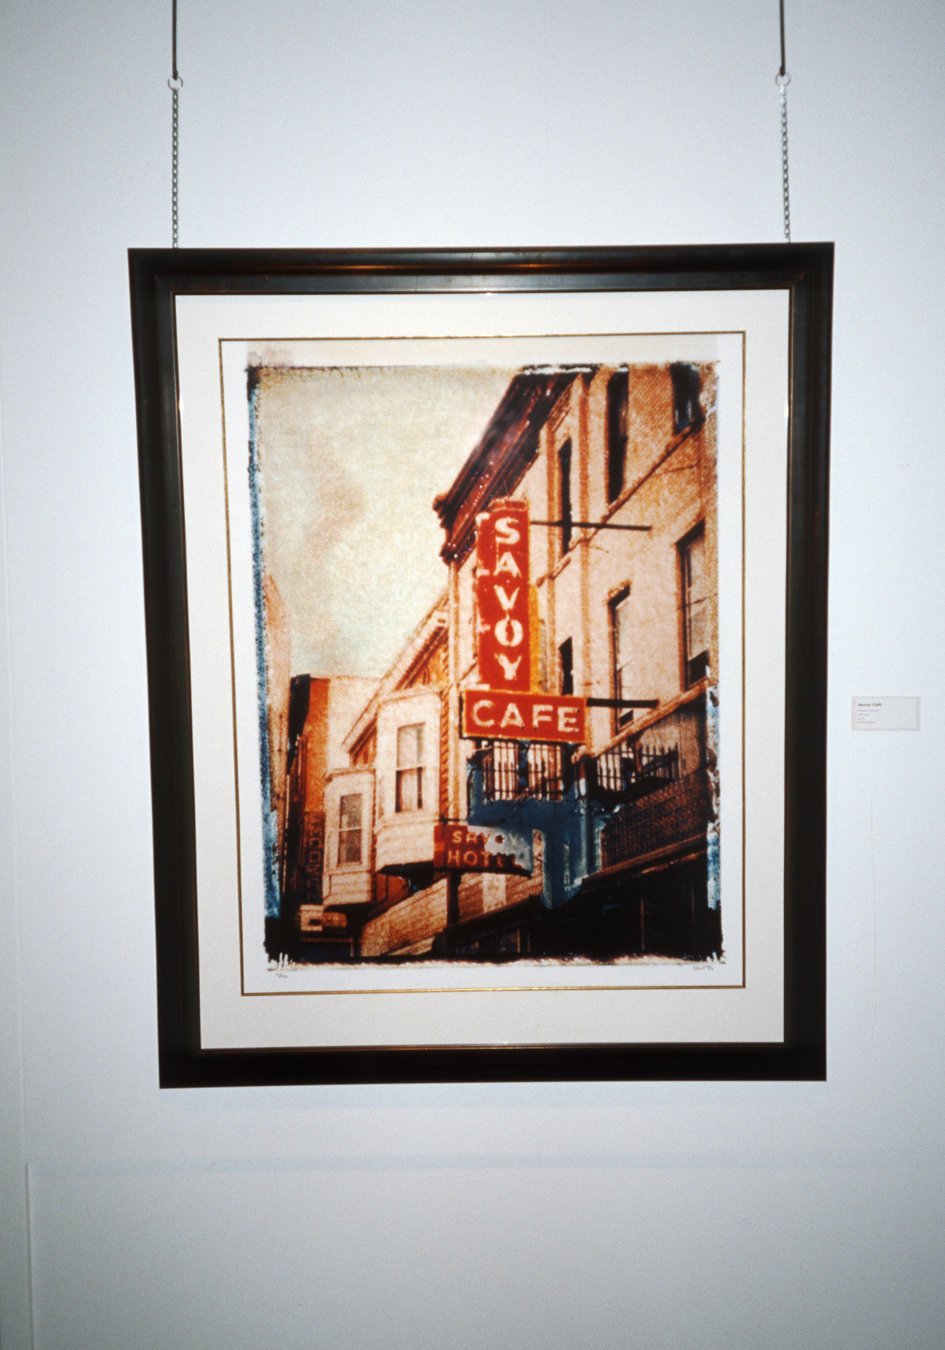 Savoy Cafe, Exhibition in New Mexico